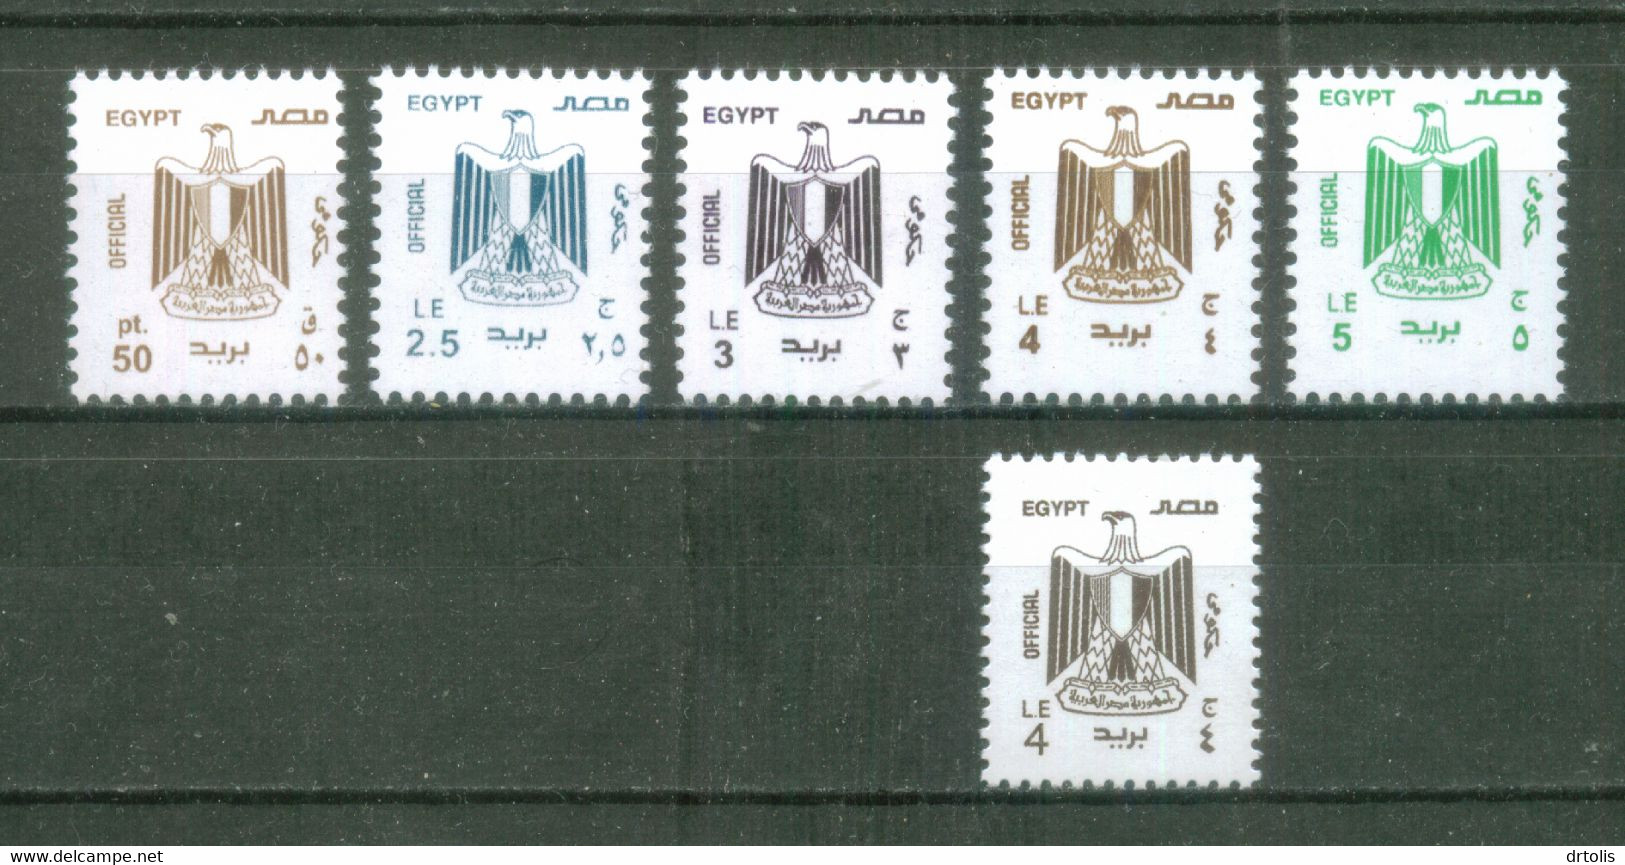 EGYPT / 2018 / OFFICIAL / NEW VALUES & REDRAWN 1991 SET / INCLUDING TYPE II 4 POUNDS / MNH / VF - Nuovi